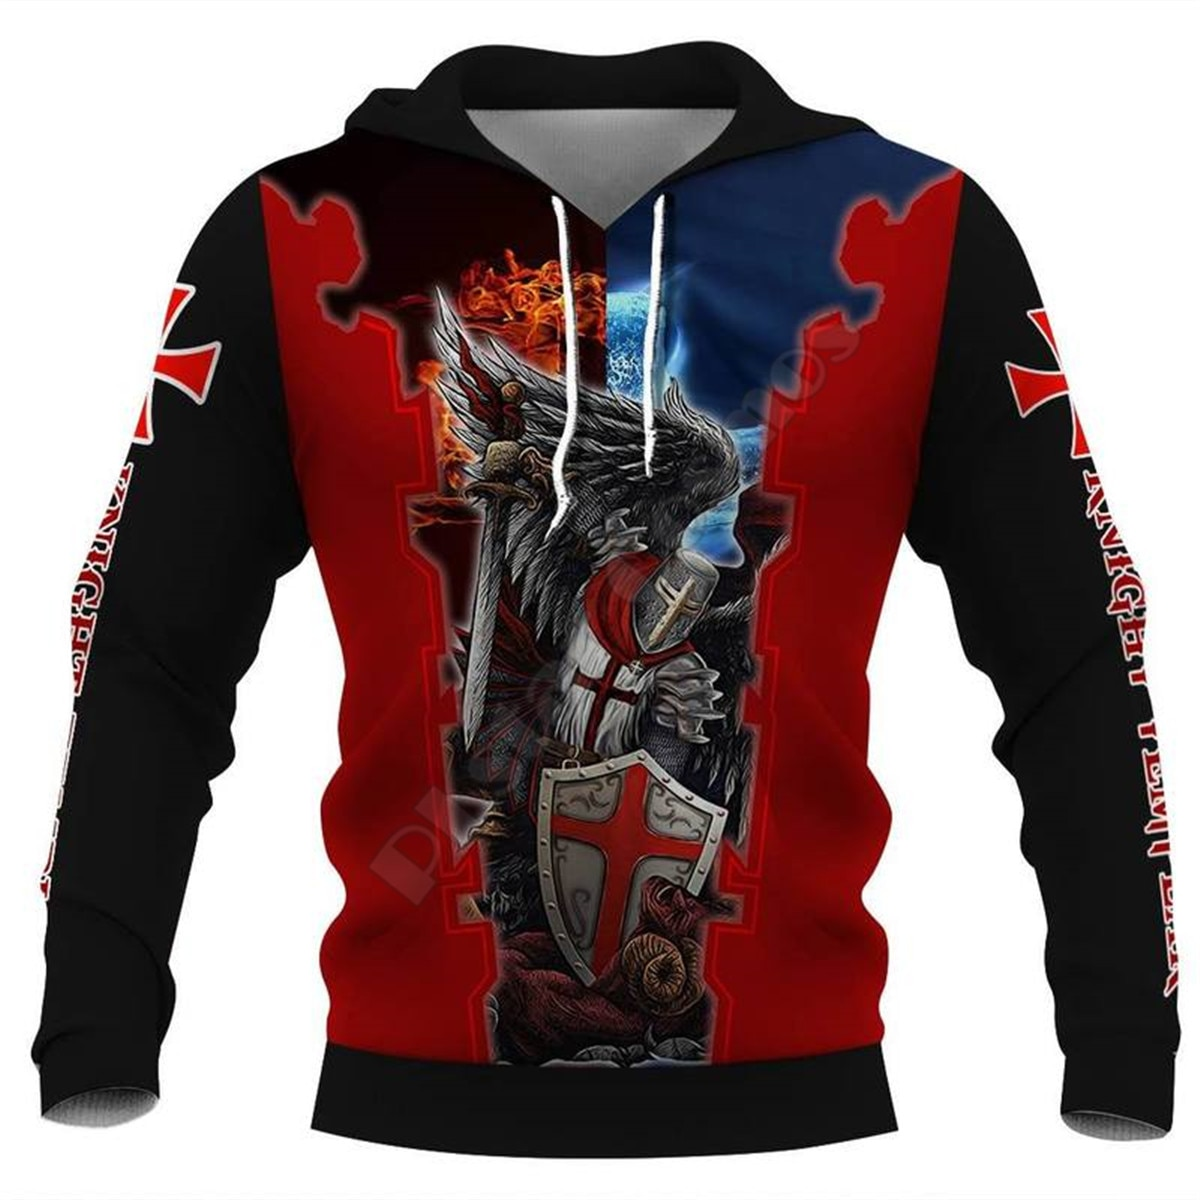 Knight Templar Armor 3D All Over Printed Hoodies Fashion Pullover Men For Women Sweatshirts Sweater Cosplay Costumes 10